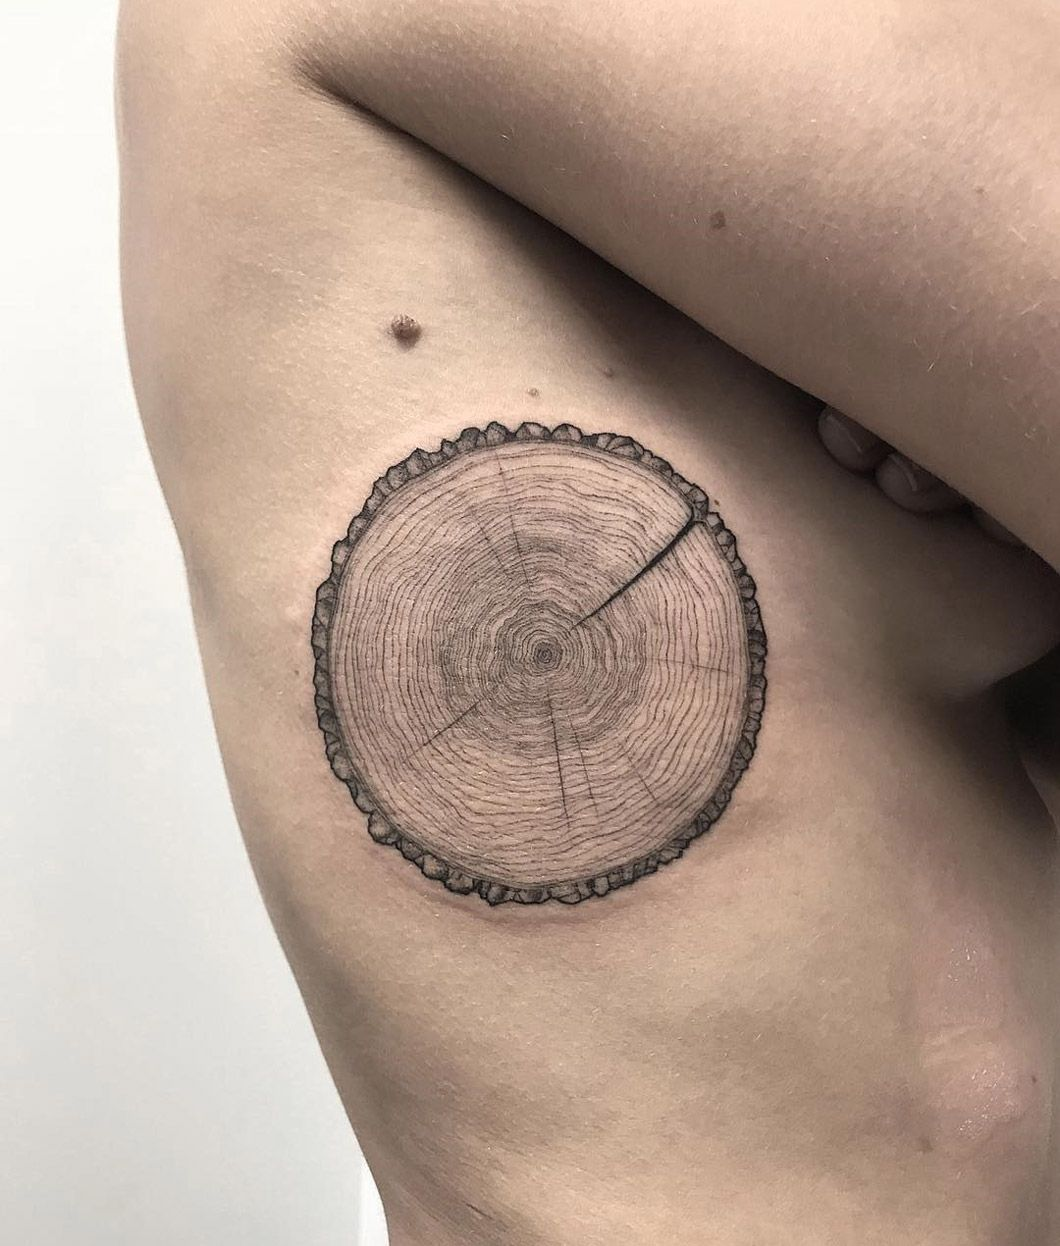 Tattoos for men ring tree trunk section  inked art  pinterest  tree trunks tattoo and